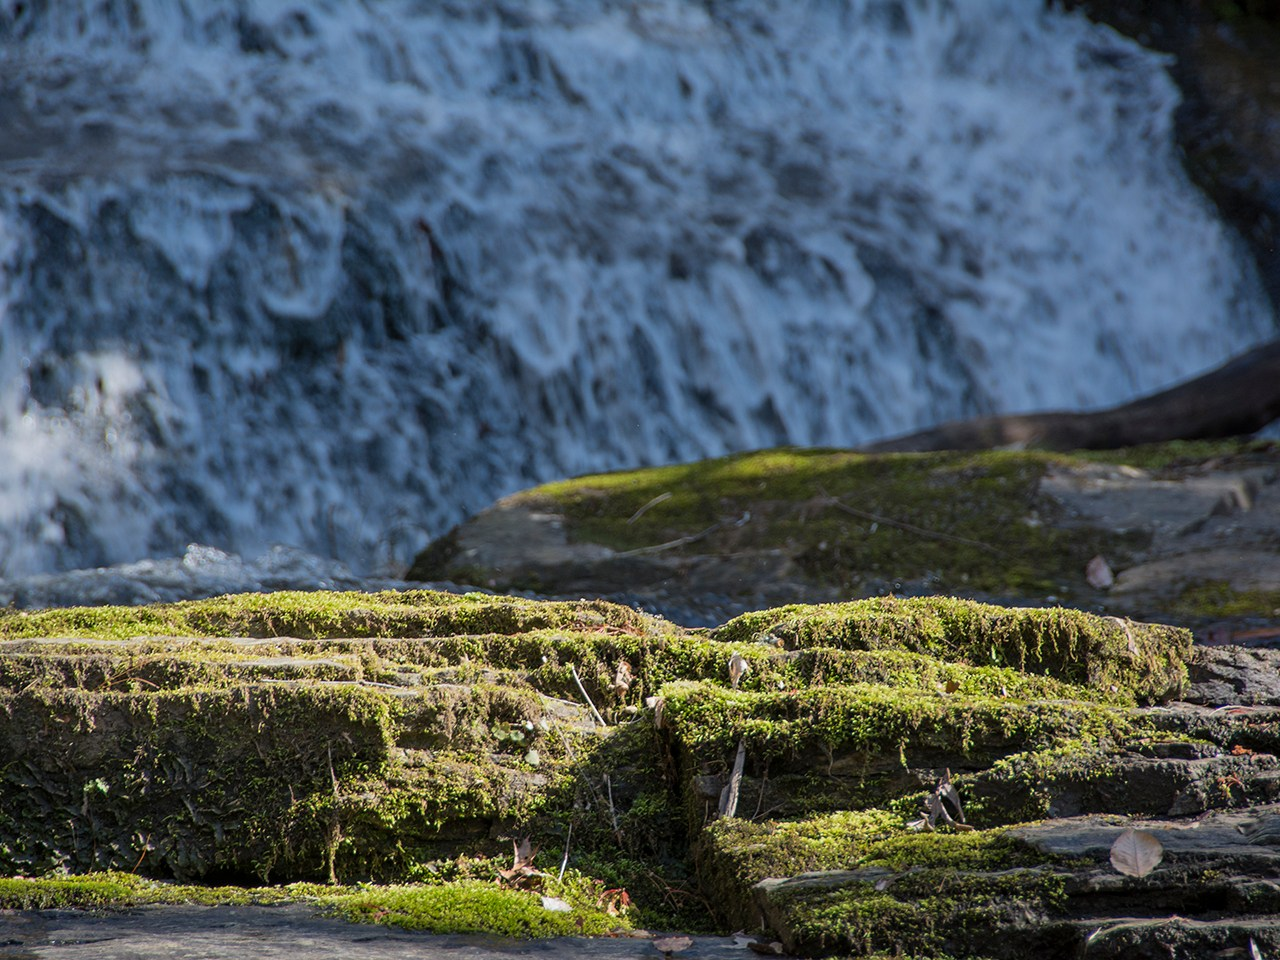 Photo of mossy rocks in front of a waterfall.